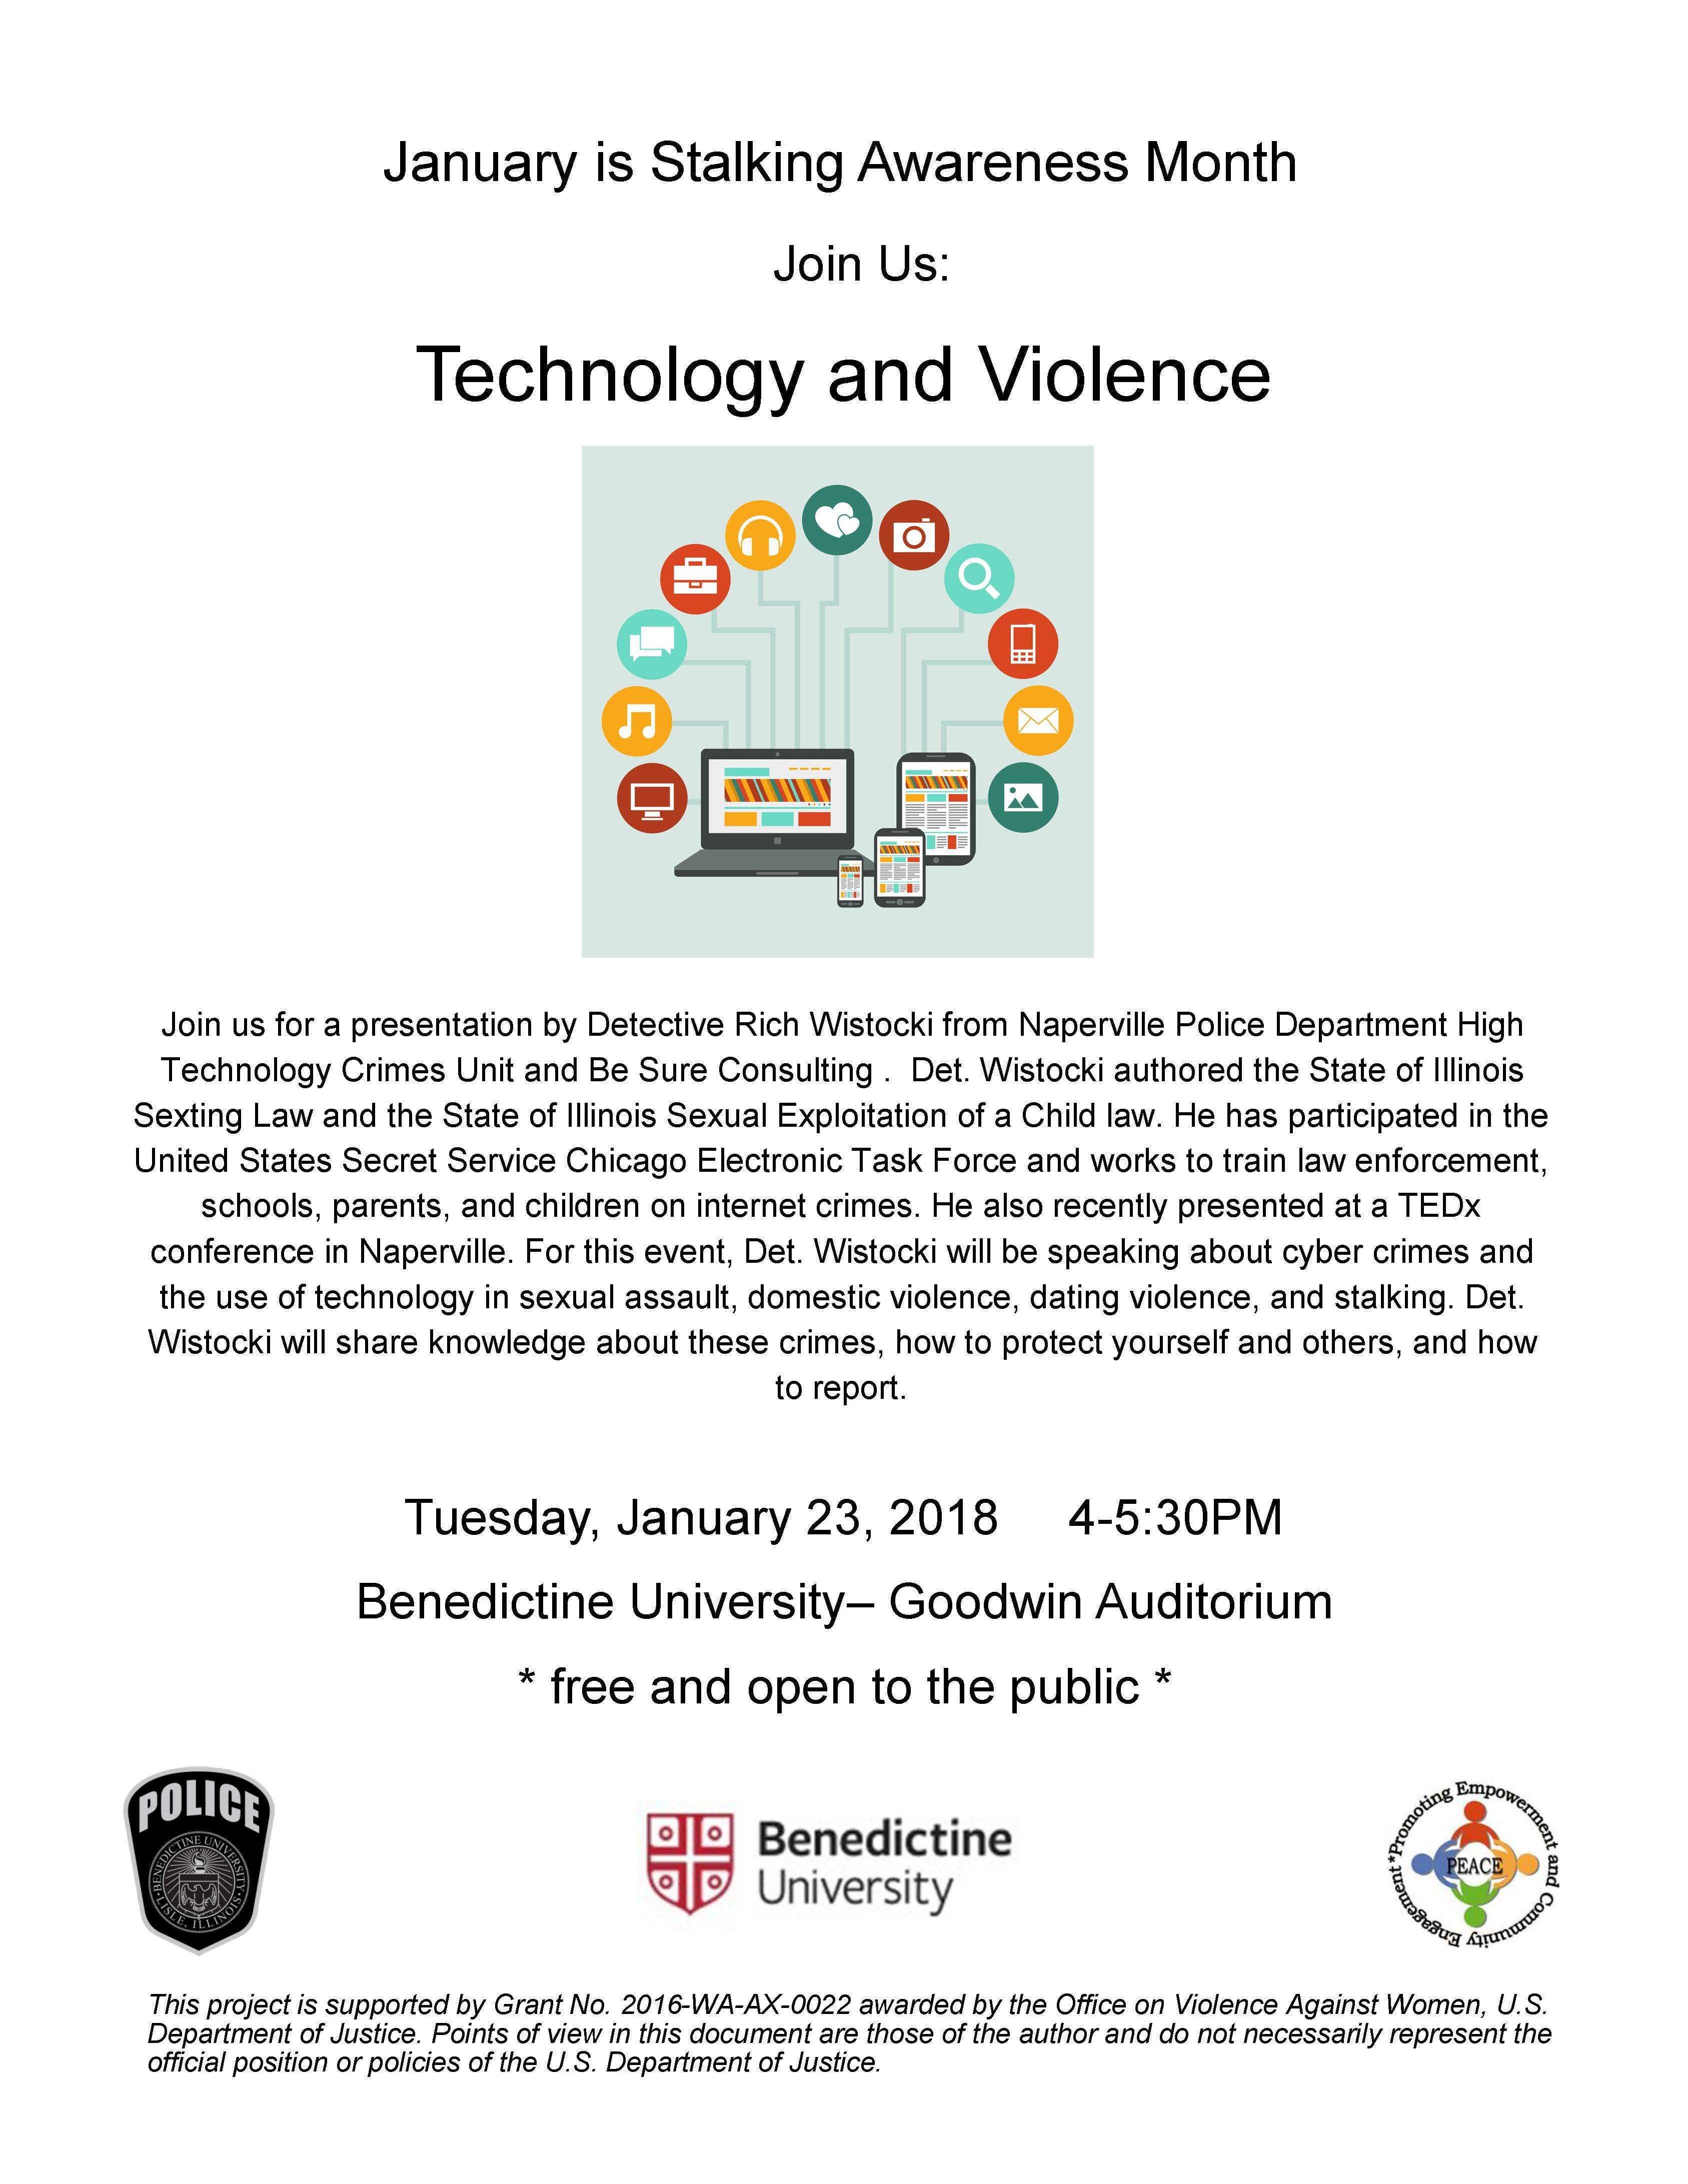 Technology and Violence speakers